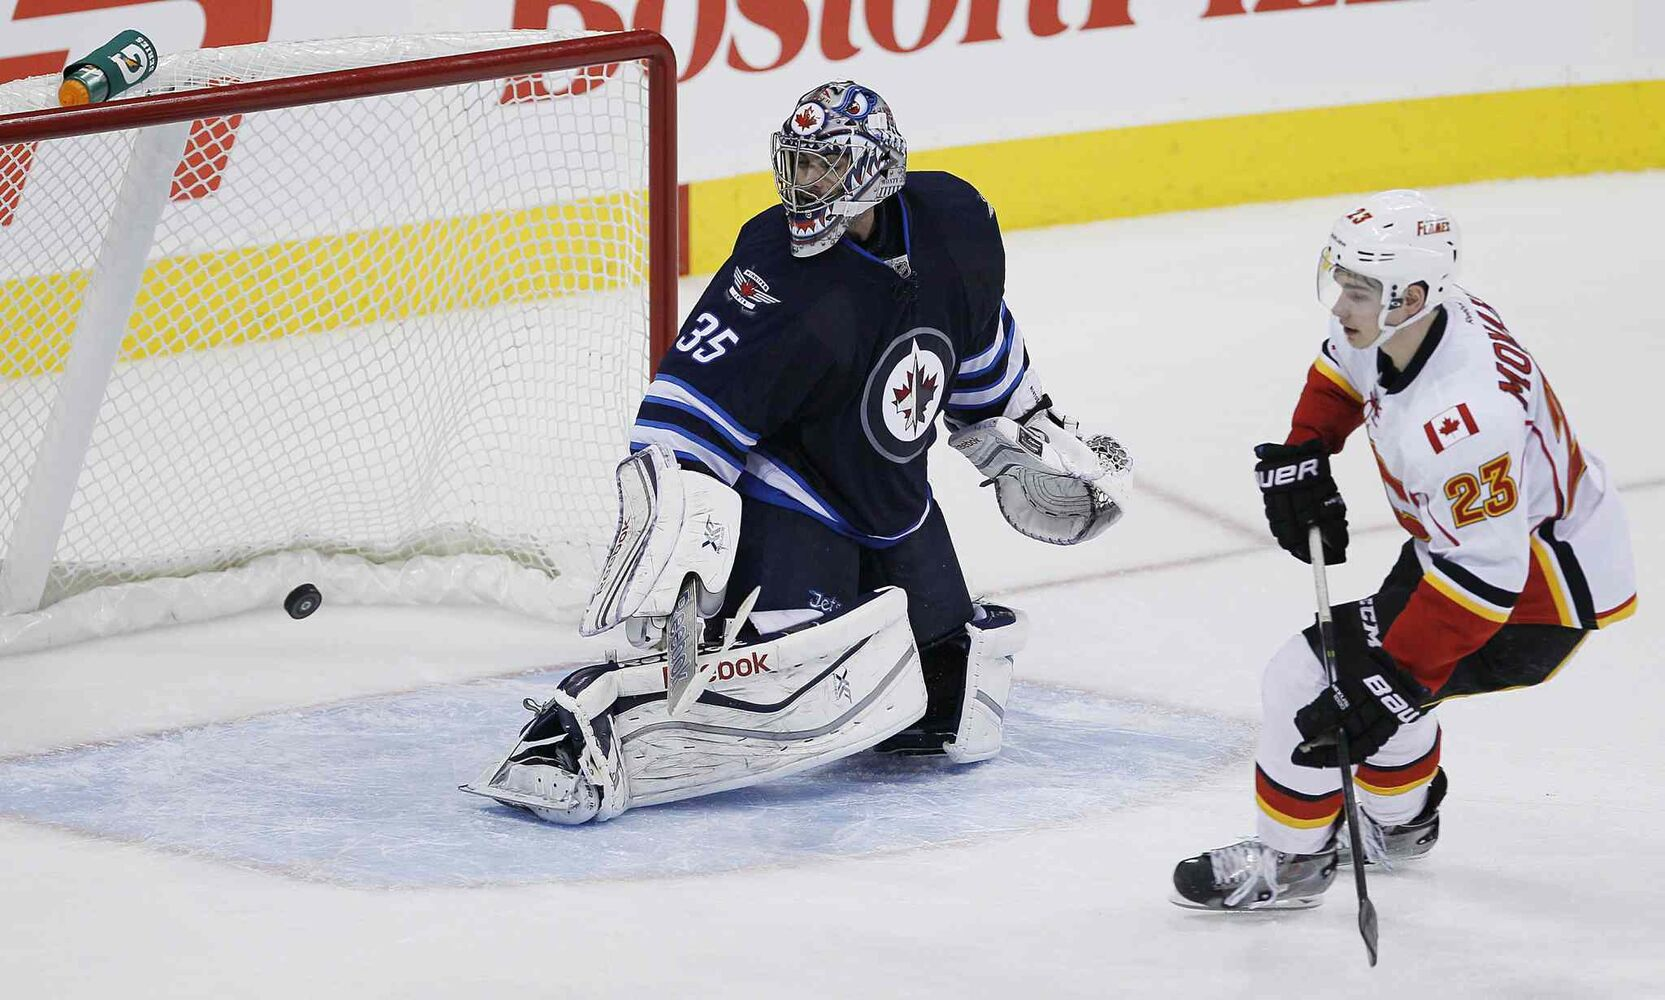 Calgary Flames' Sean Monahan (23) scores on Winnipeg Jets' goaltender Al Montoya (35) in the shootout to win in NHL action in Winnipeg on Monday, Nov. 18, 2013.  (John Woods / Winnipeg Free Press)